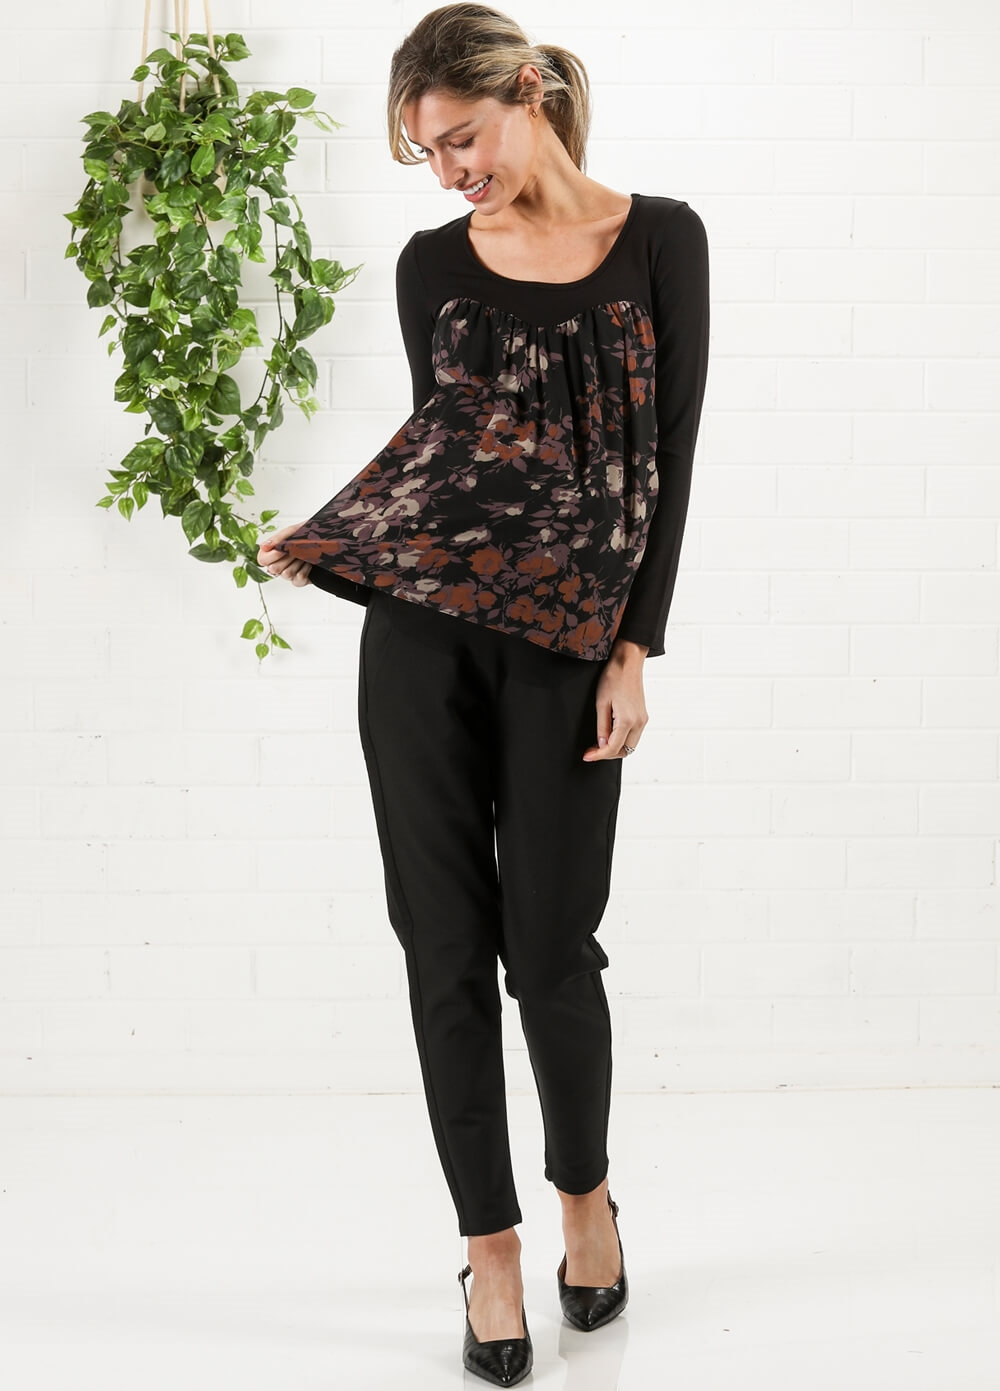 Black/Lilac Floral Chiffon Maternity Top by Maternal America